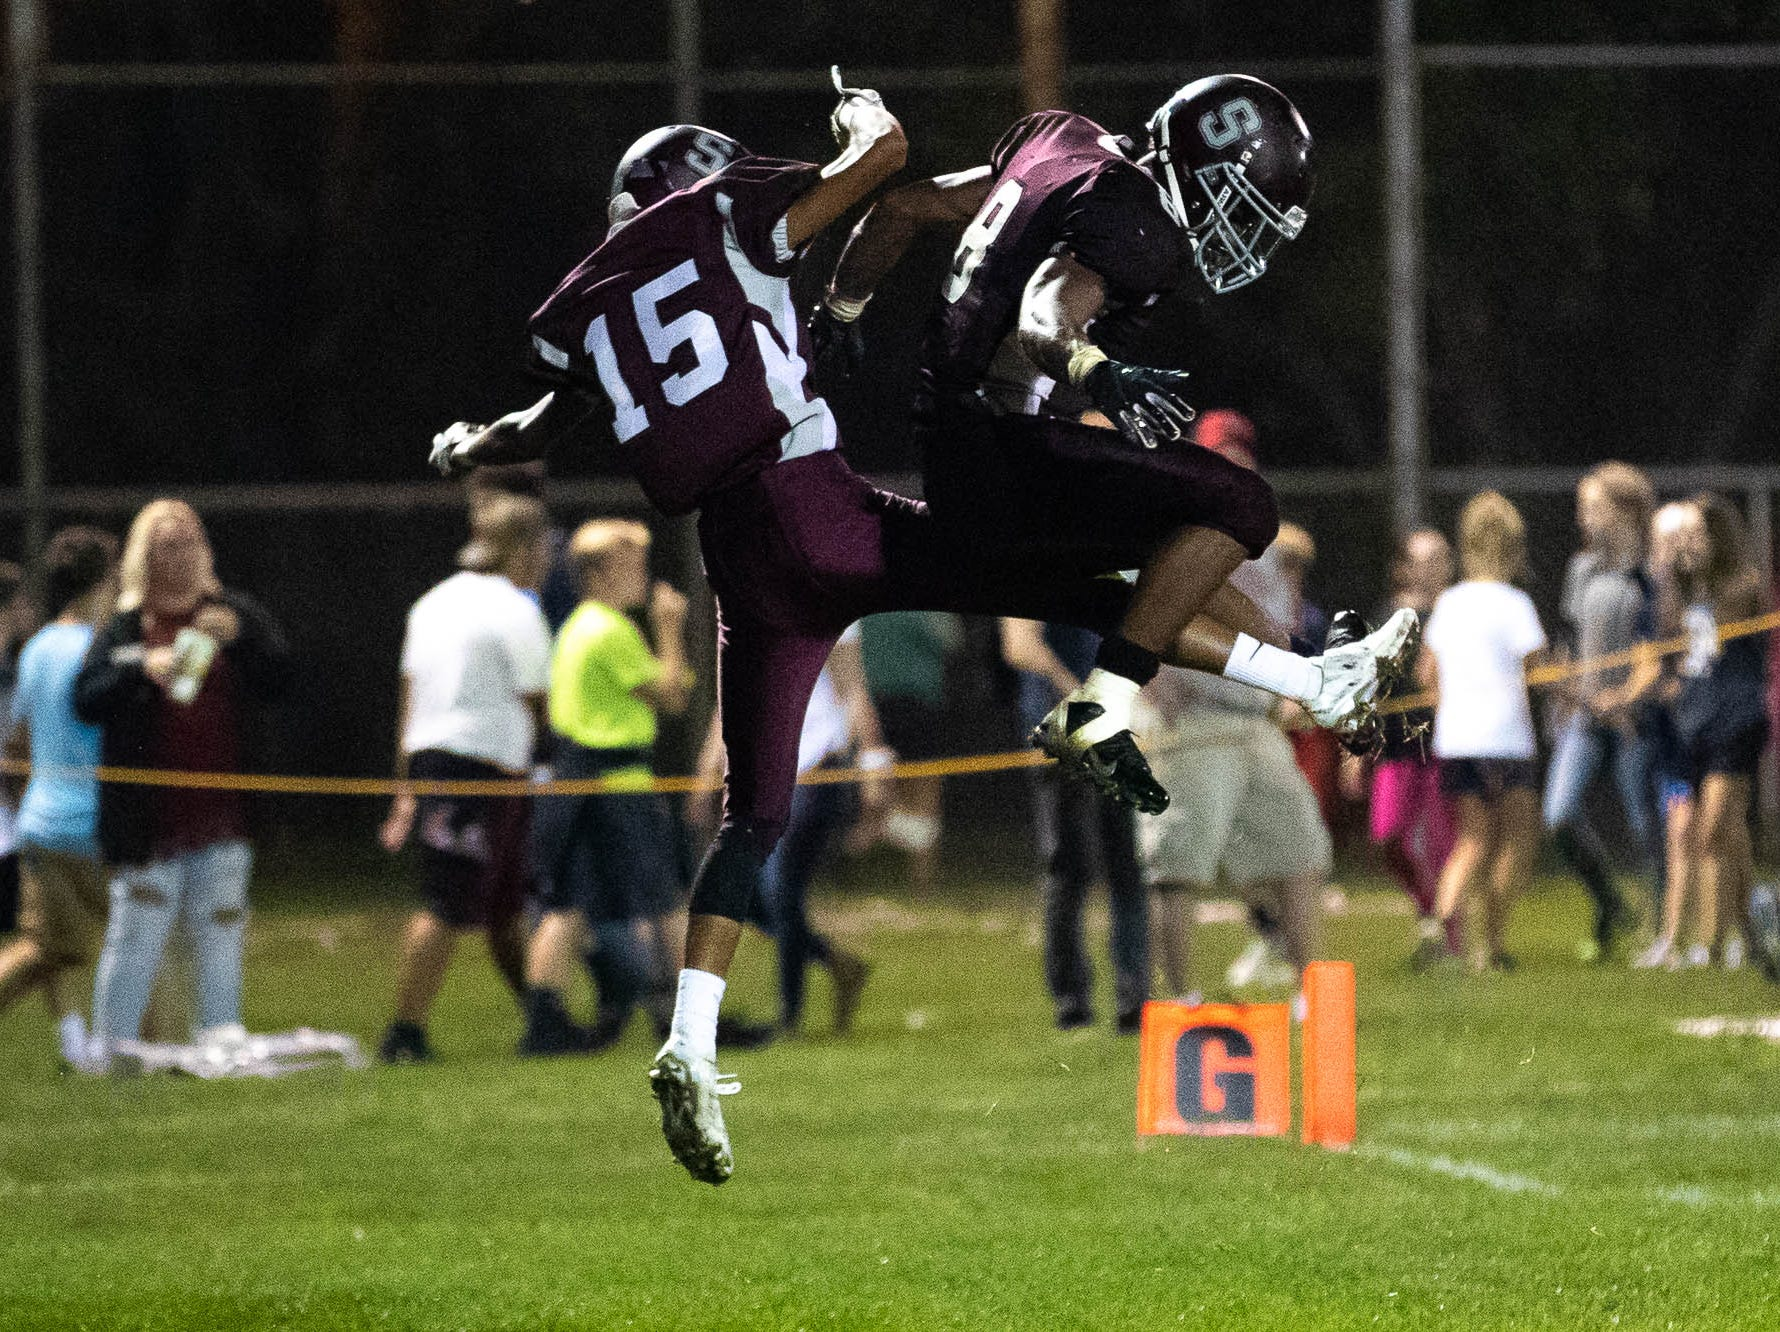 Shippensburg's Isaiah Houser (15) celebrates a touchdown with Shippensburg's Adam Houser (8) during a football game between Shippensburg and Bermudian Springs, Friday, Sept. 7, 2018, at Shippensburg High School.  Shippensburg Greyhounds defeated the Bermudian Springs Eagles 31-17.